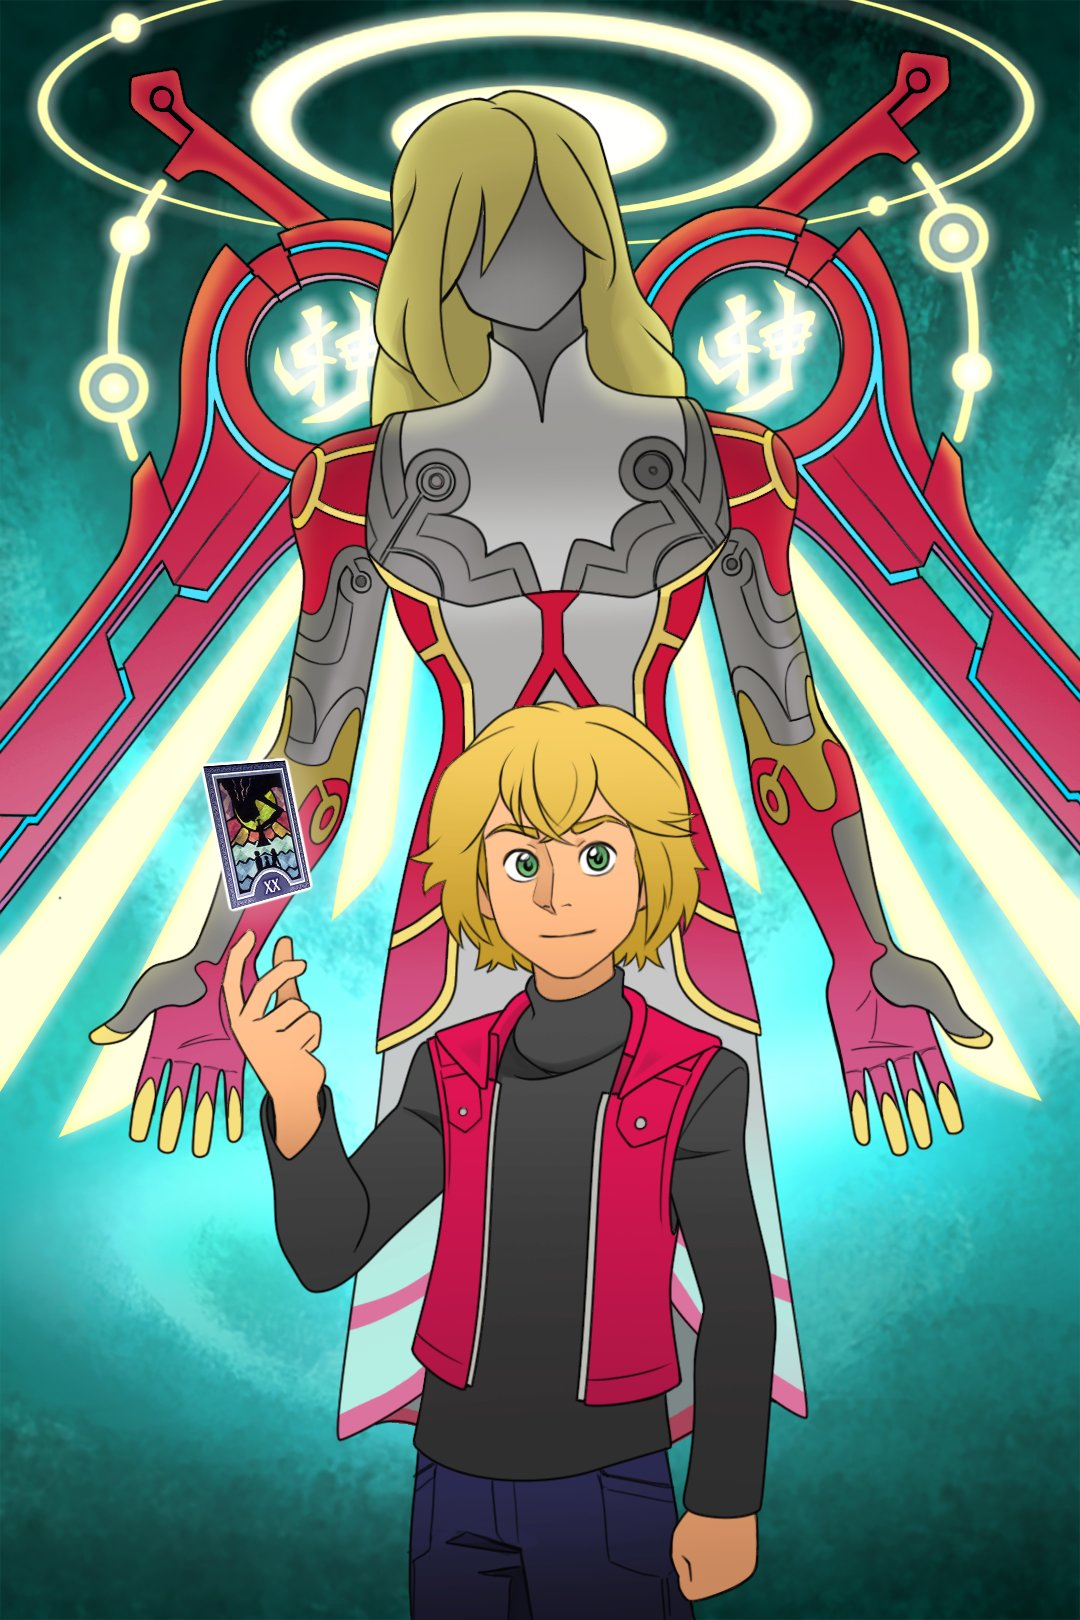 1boy armor blonde_hair blue_eyes card gloves guilhermerm highres looking_at_viewer male_focus monado persona short_hair shulk_(xenoblade) simple_background smile spoilers super_smash_bros. sword vest weapon wings xenoblade_chronicles xenoblade_chronicles_(series)